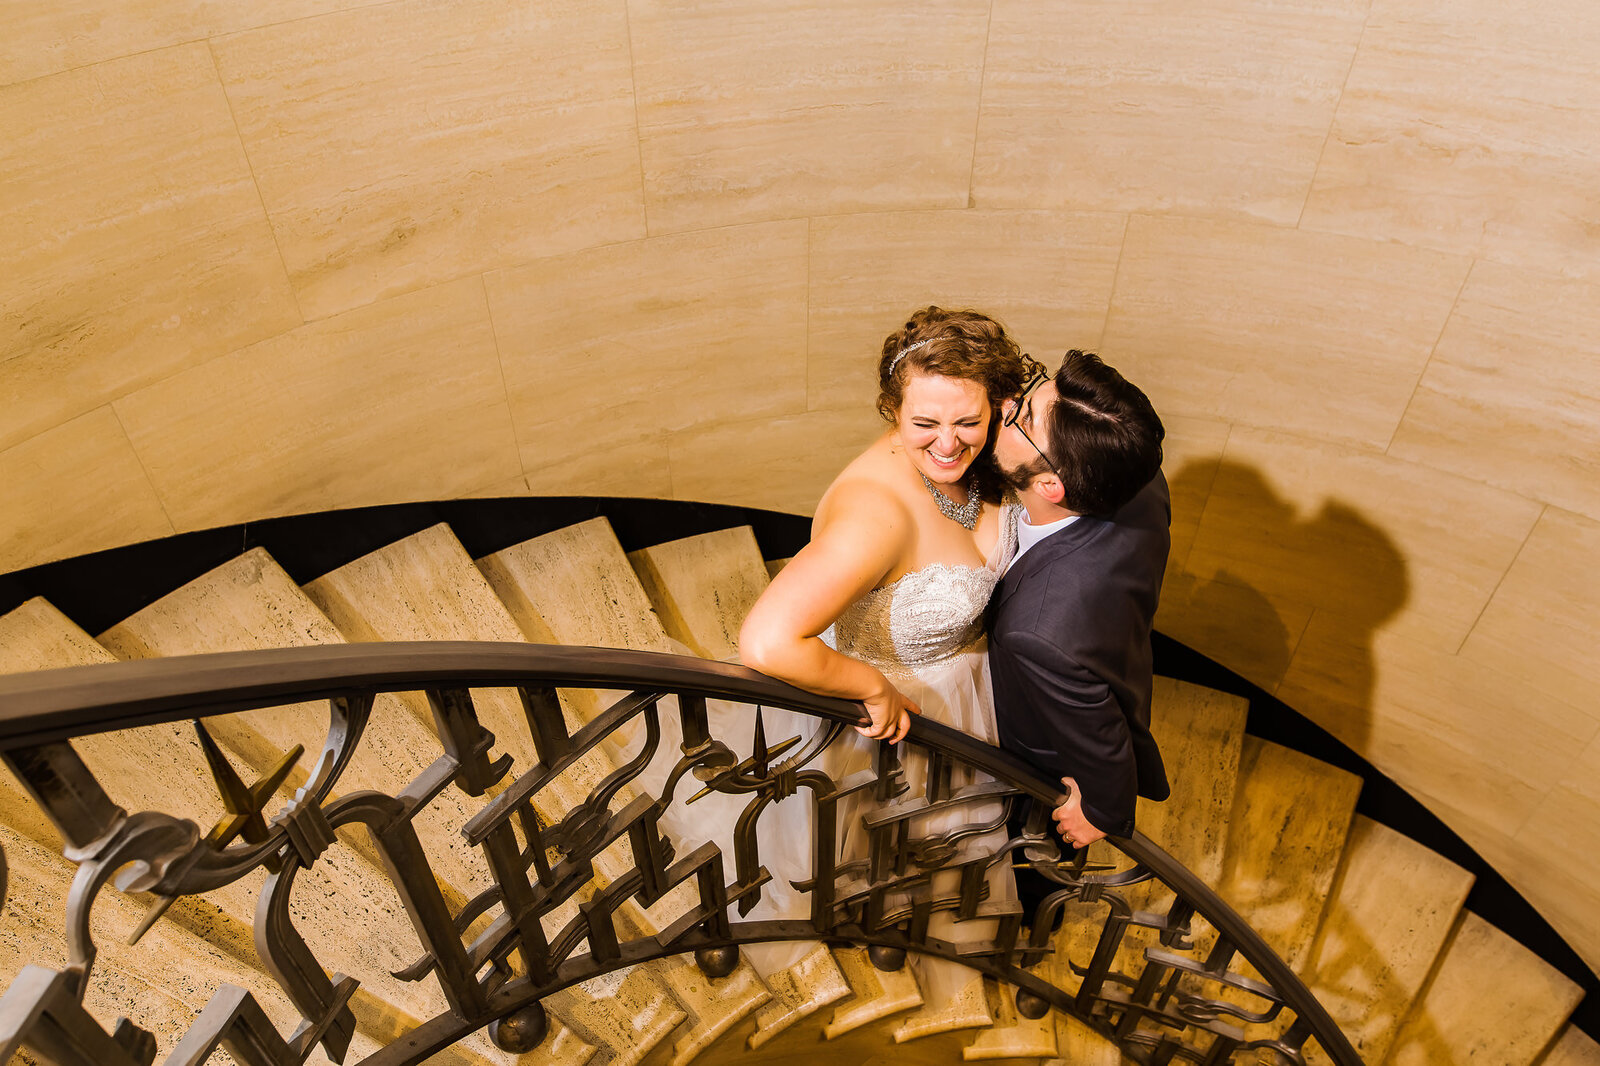 Candid wedding photo of bride and groom cuddling in a stairwell at The Chase Park Plaza in St. Louis